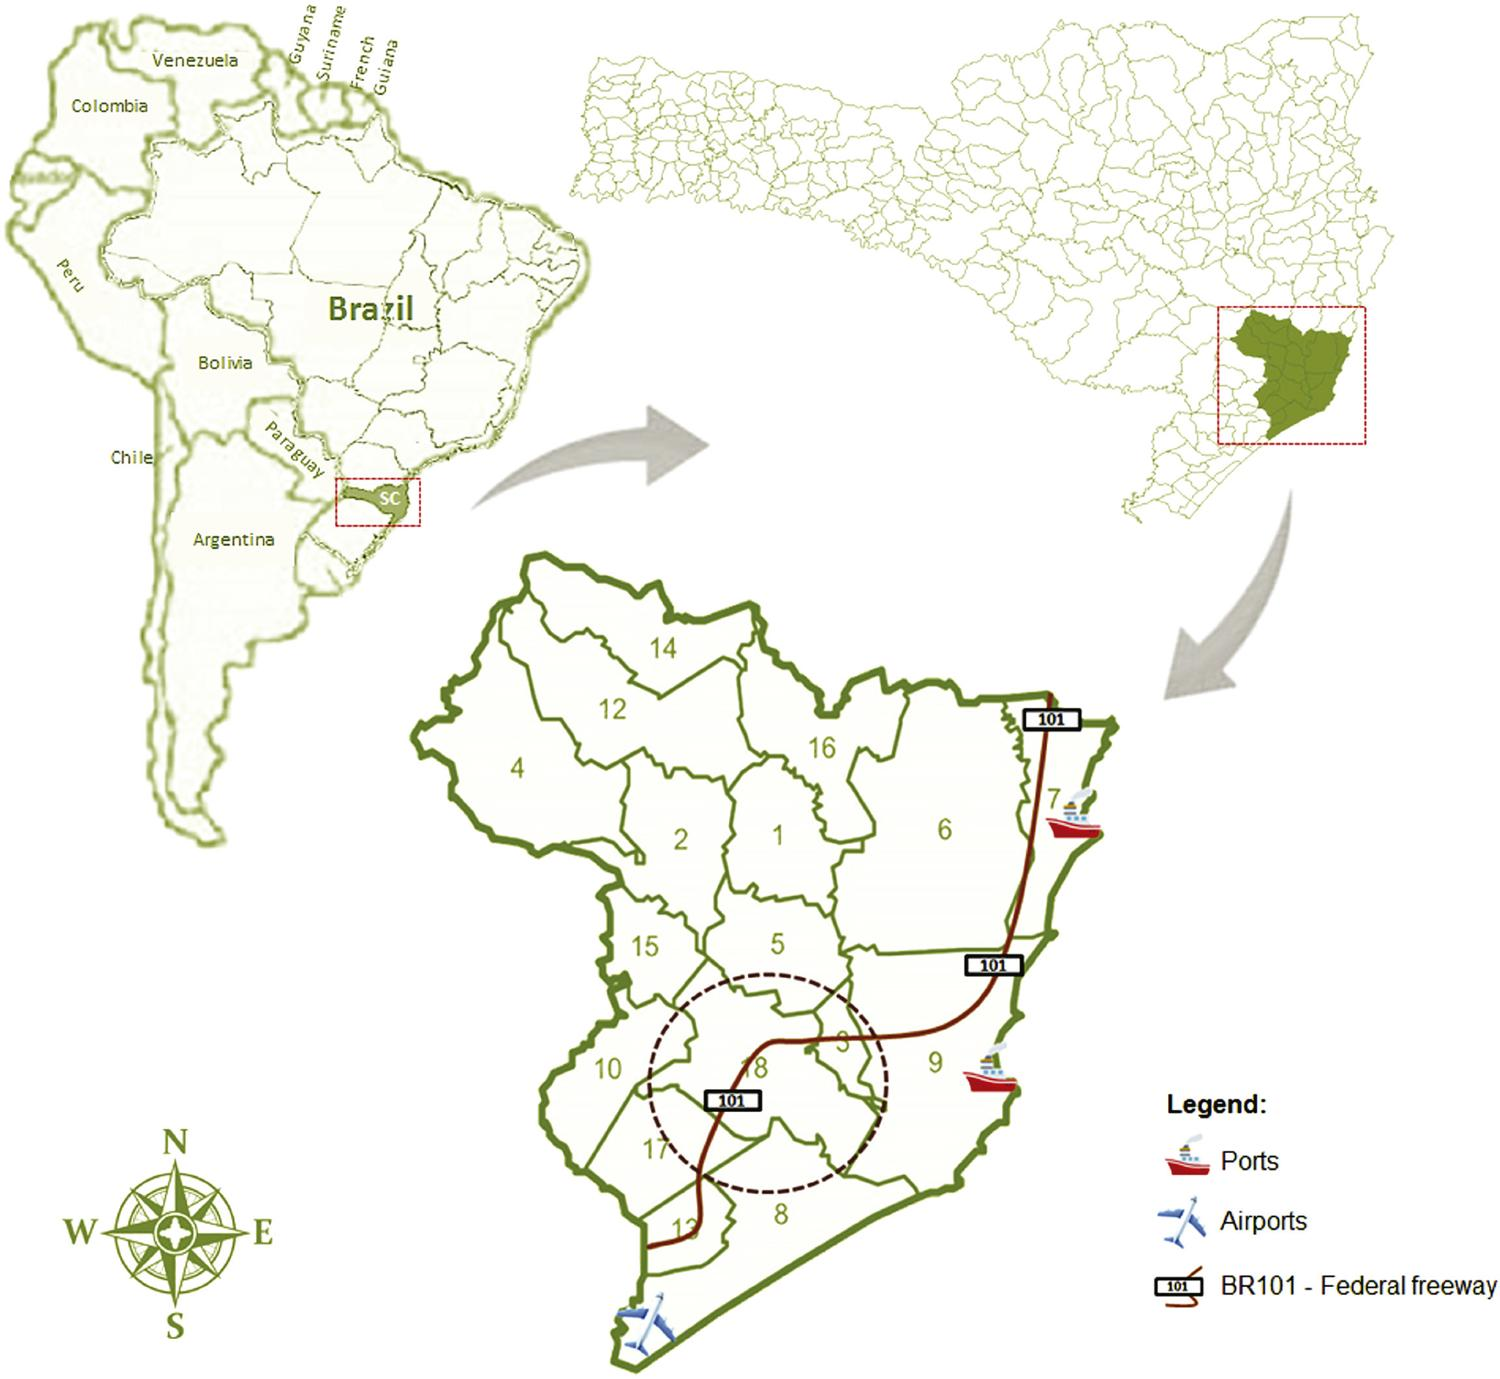 Maps of the Latin America, Brazil, and Santa Catarina State, with emphasis on the Laguna region, and the 18 municipalities from where blood samples were collected. Location of the airport, the ports [Imbituba (North) and Laguna (South)], the freeway BR101 and the municipality of Tubarao are depicted.